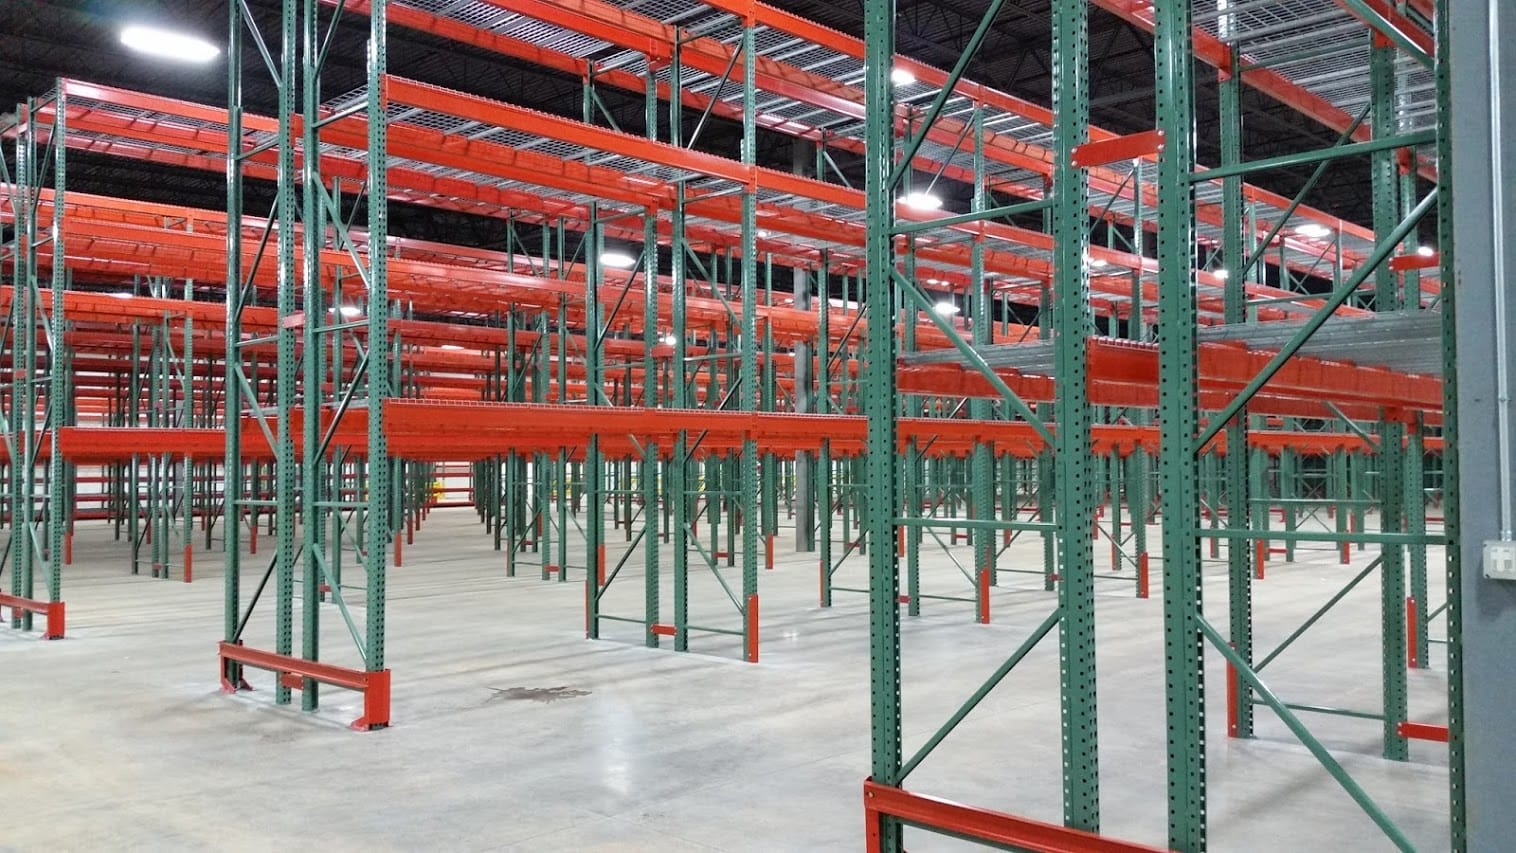 Pallet Racks Storage Solutions From Carolina Material Handling